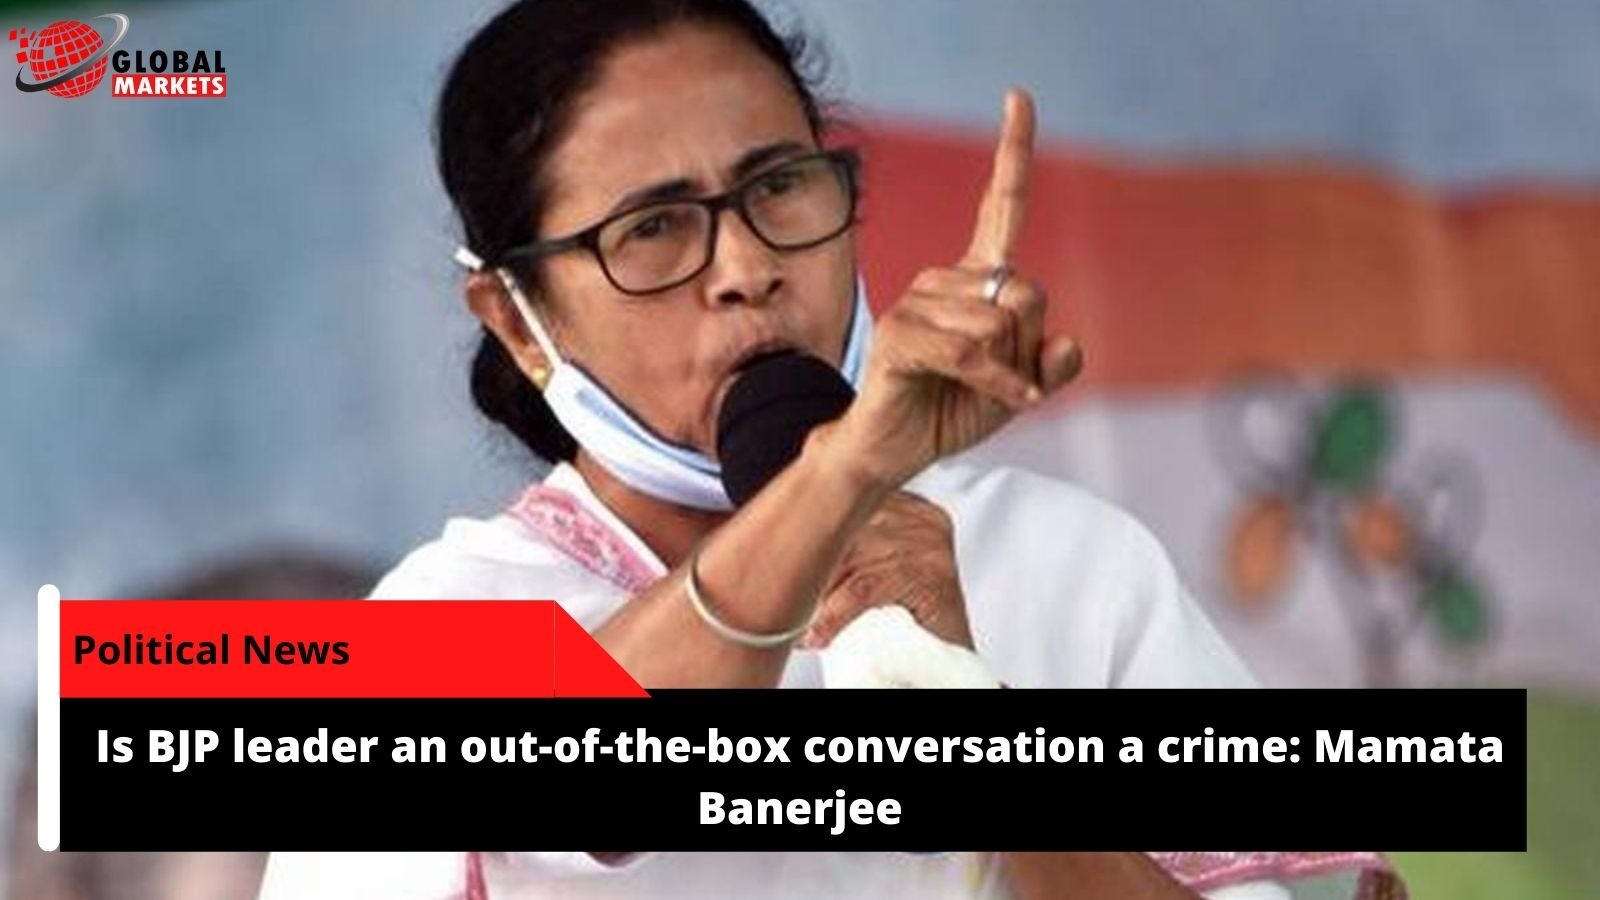 Is BJP leader an out-of-the-box conversation a crime: Mamata Banerjee